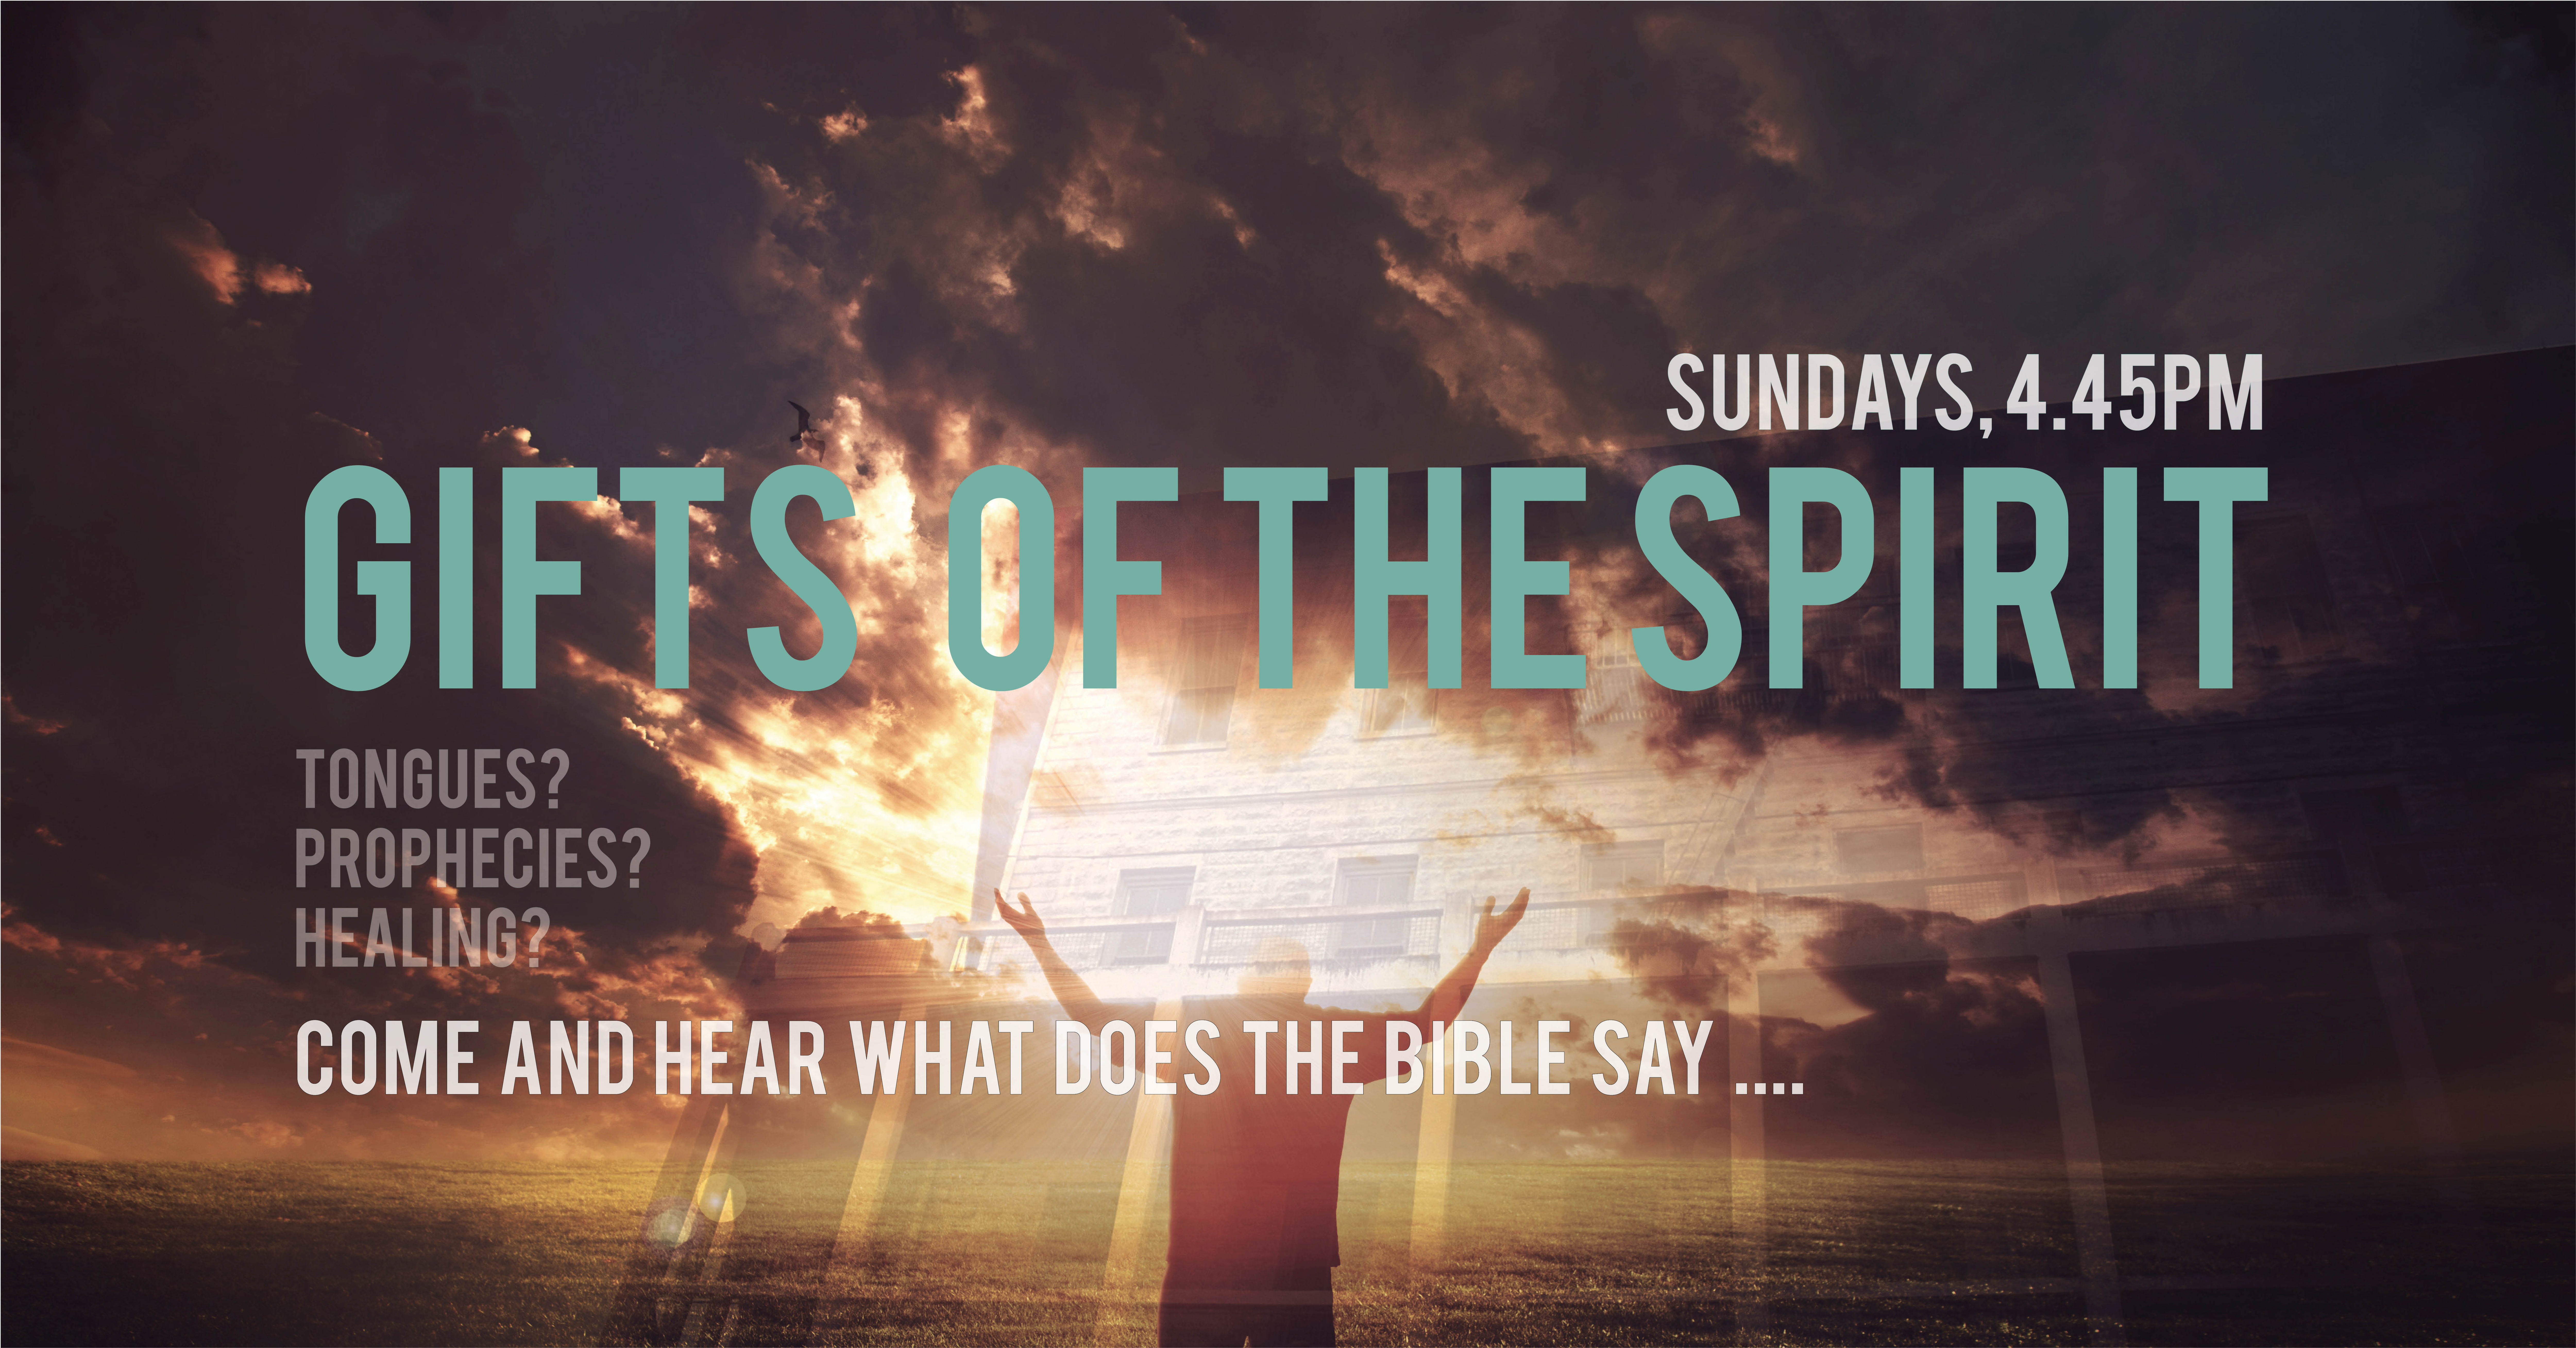 Gifts of the Spirit – Charismatic | O L D F A I T H